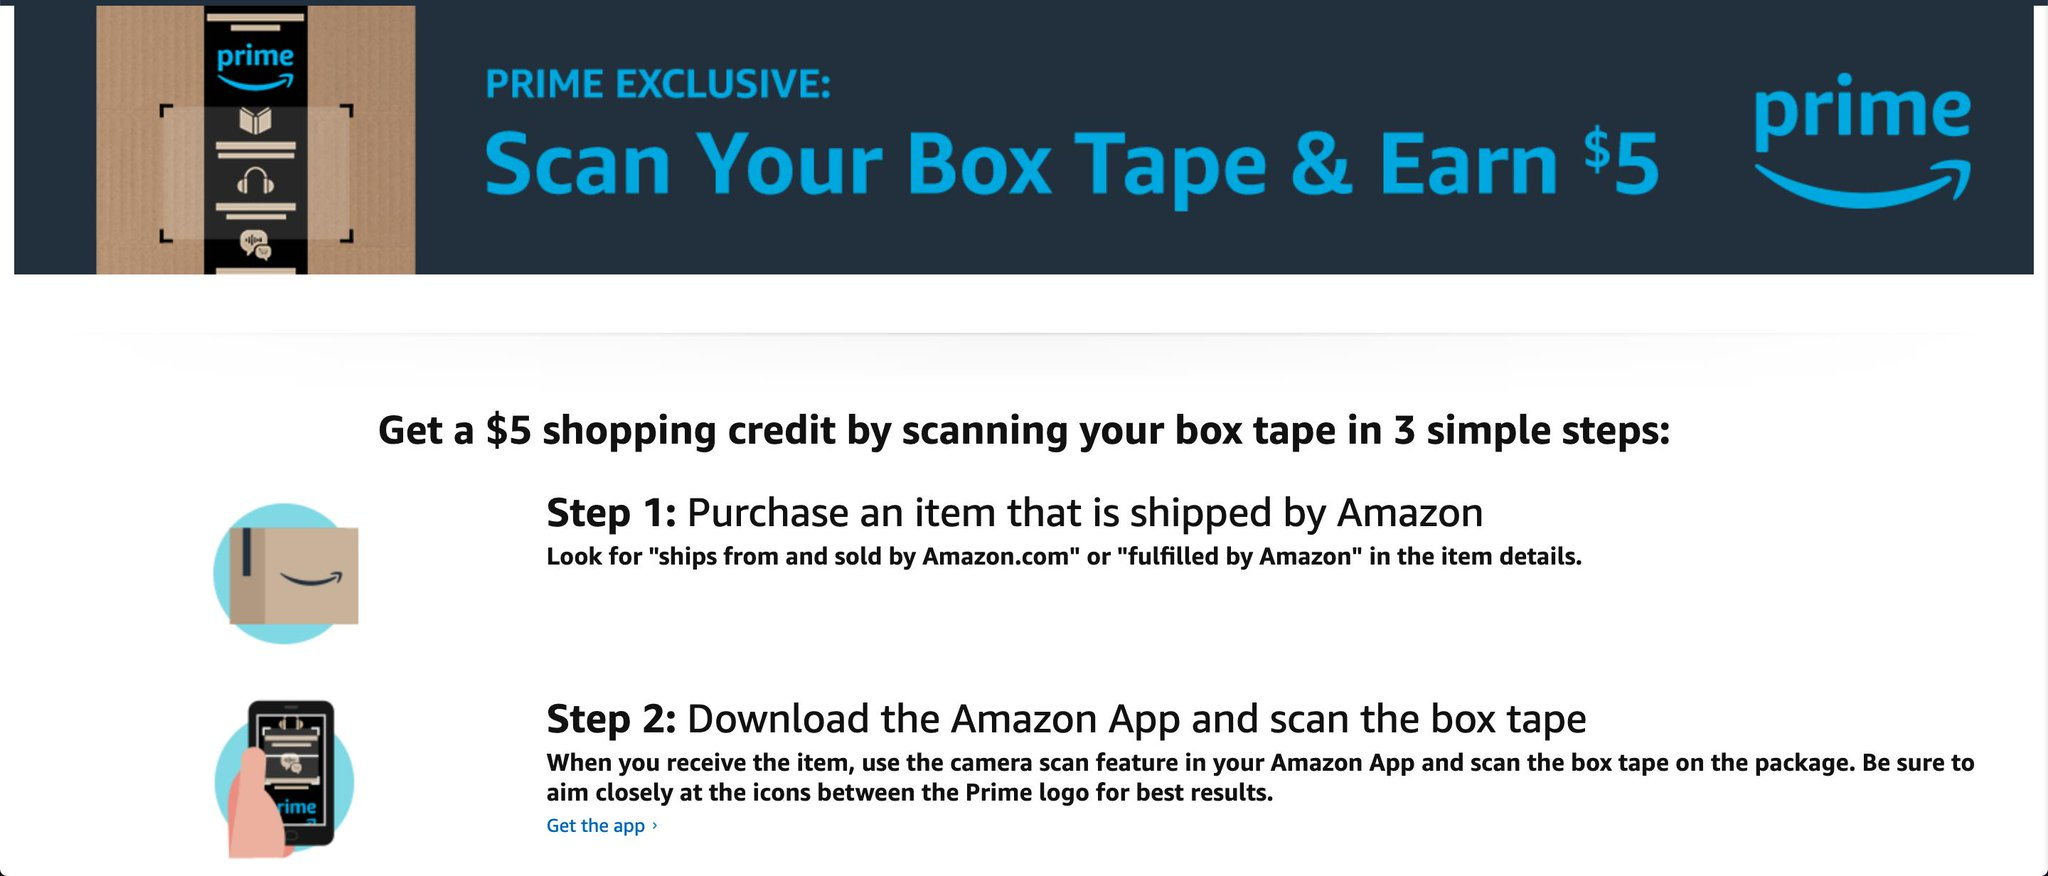 Drake On Twitter Why Is Amazon Paying People 5 To Scan Their Box Tape